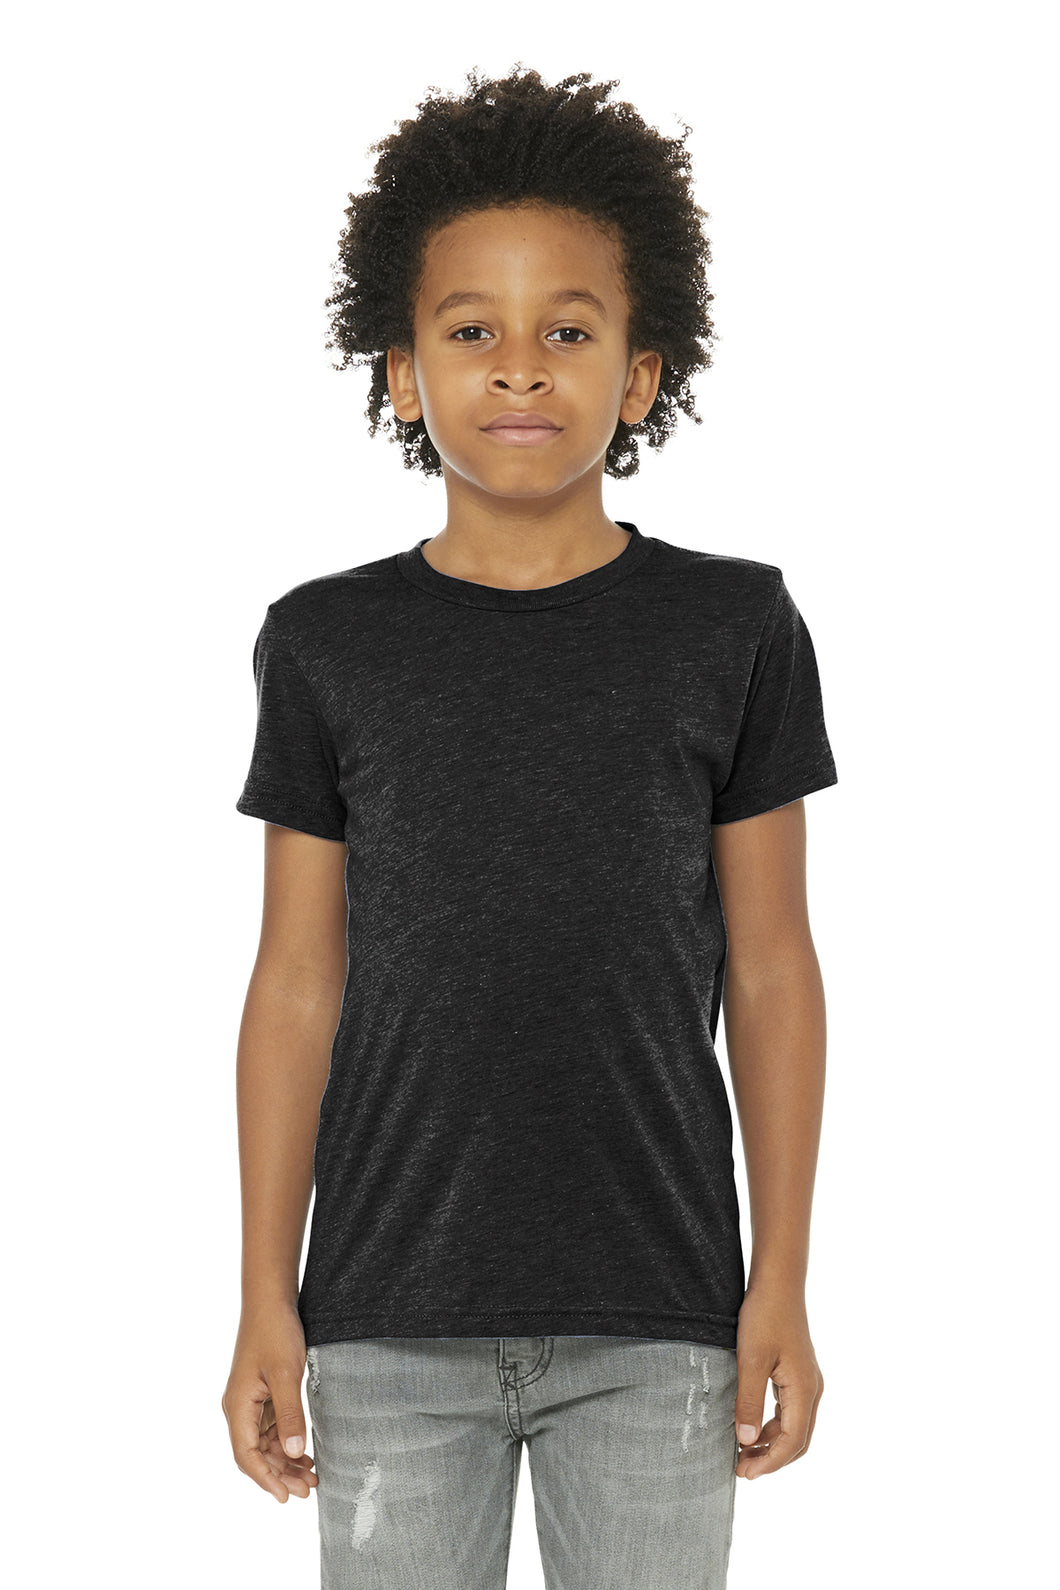 Bella+Canvas Youth Triblend Short Sleeve Tee